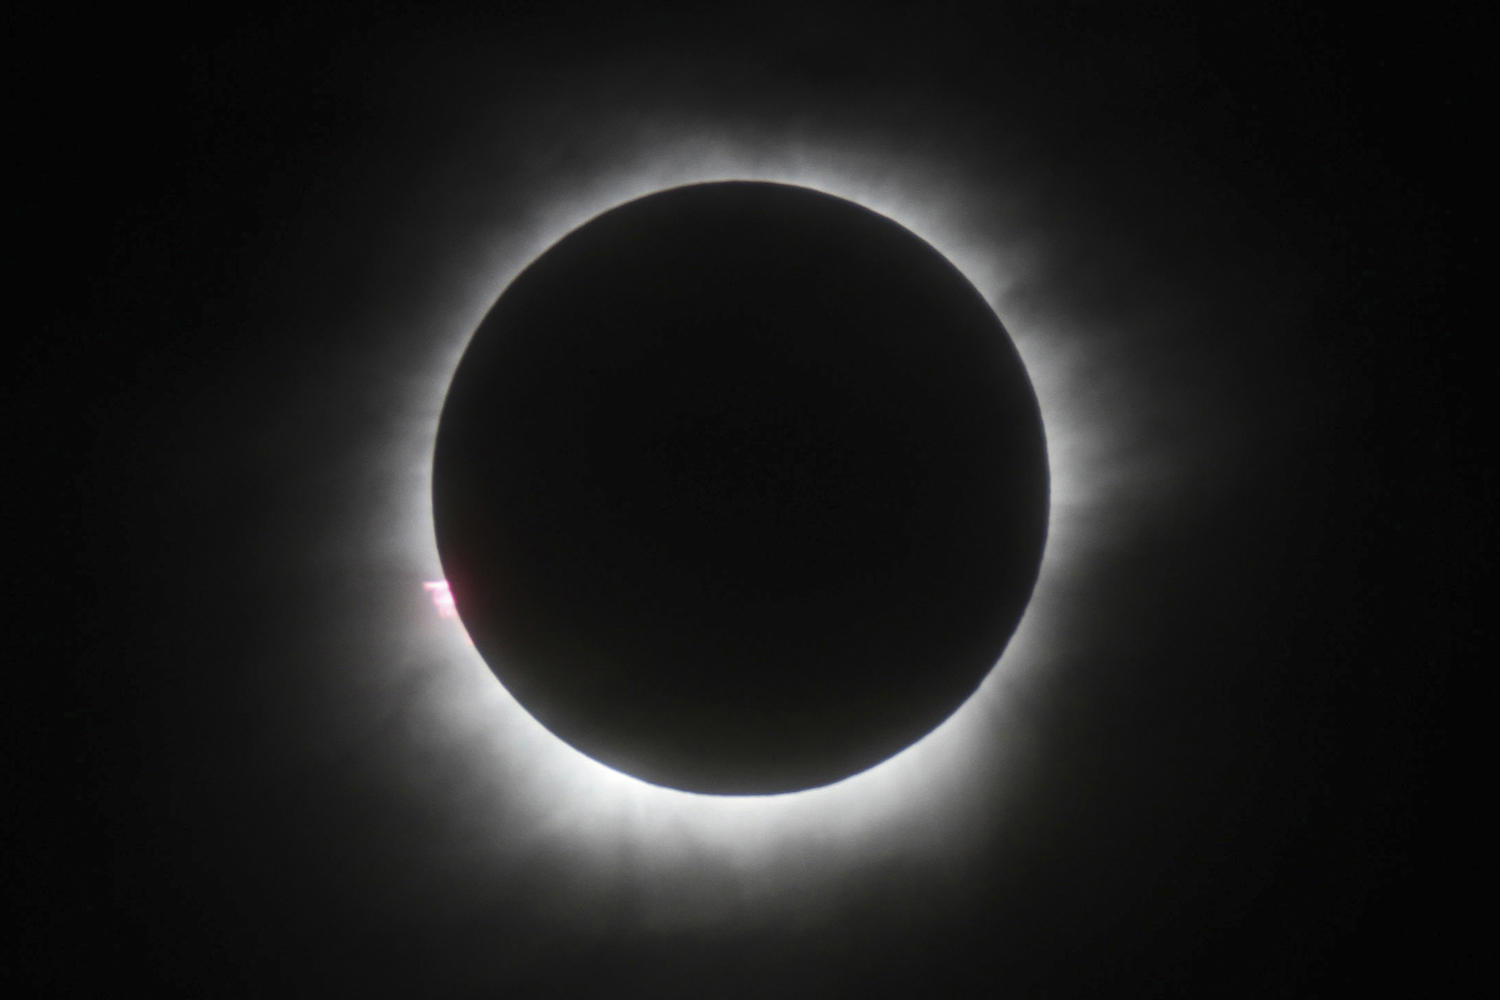 Eclipse event in Yuma on Monday